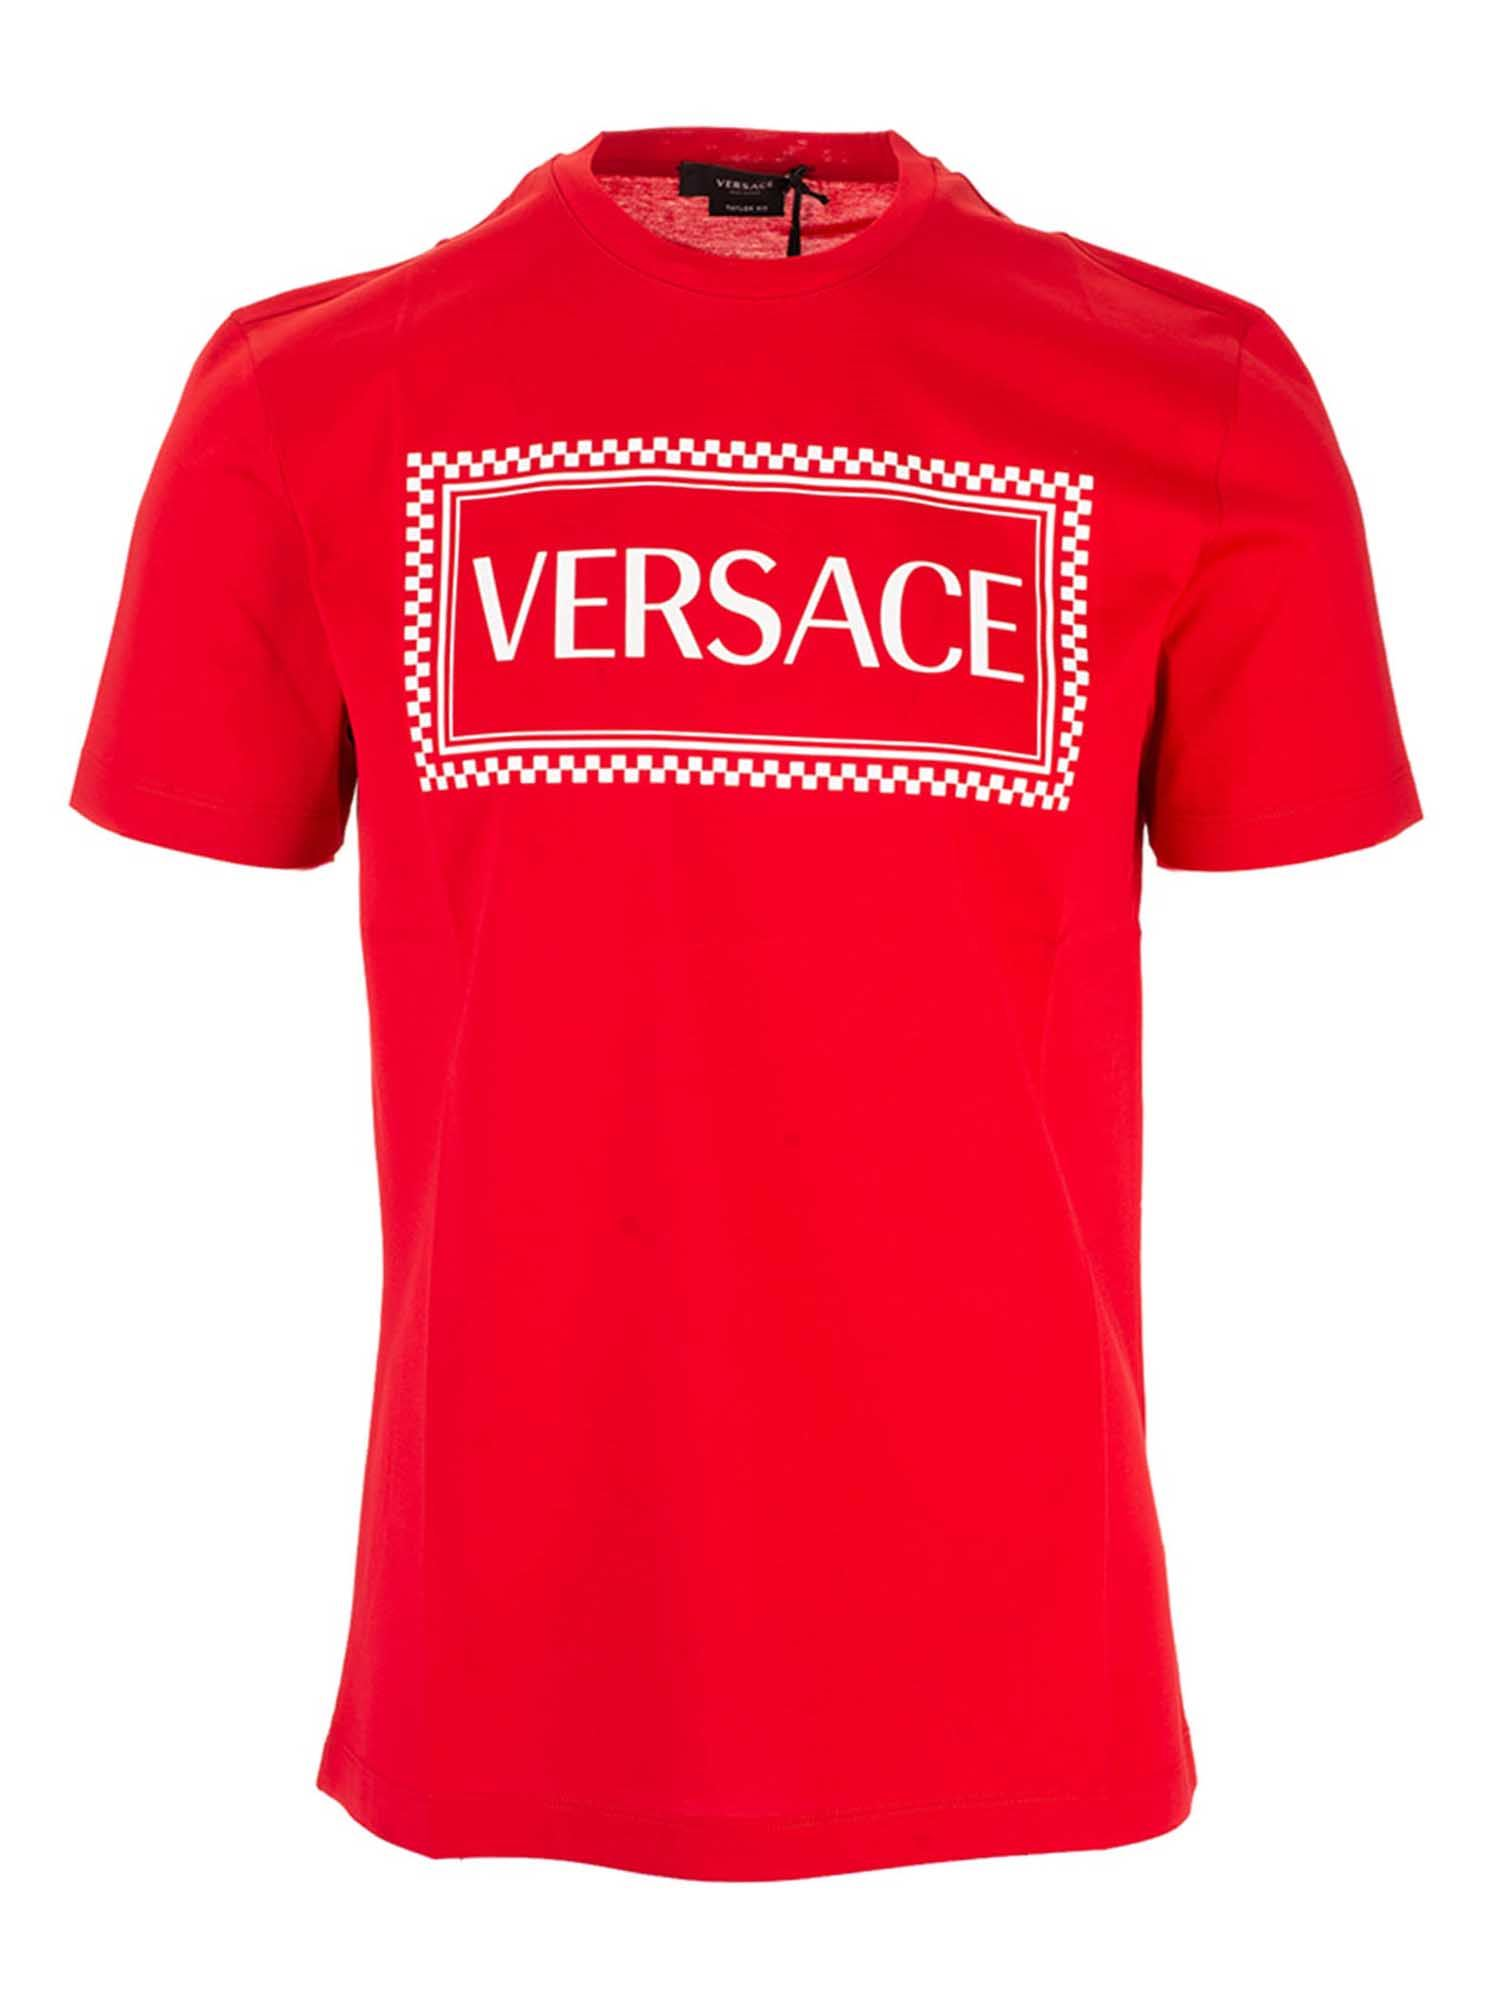 Versace 90S LOGO T-SHIRT IN RED